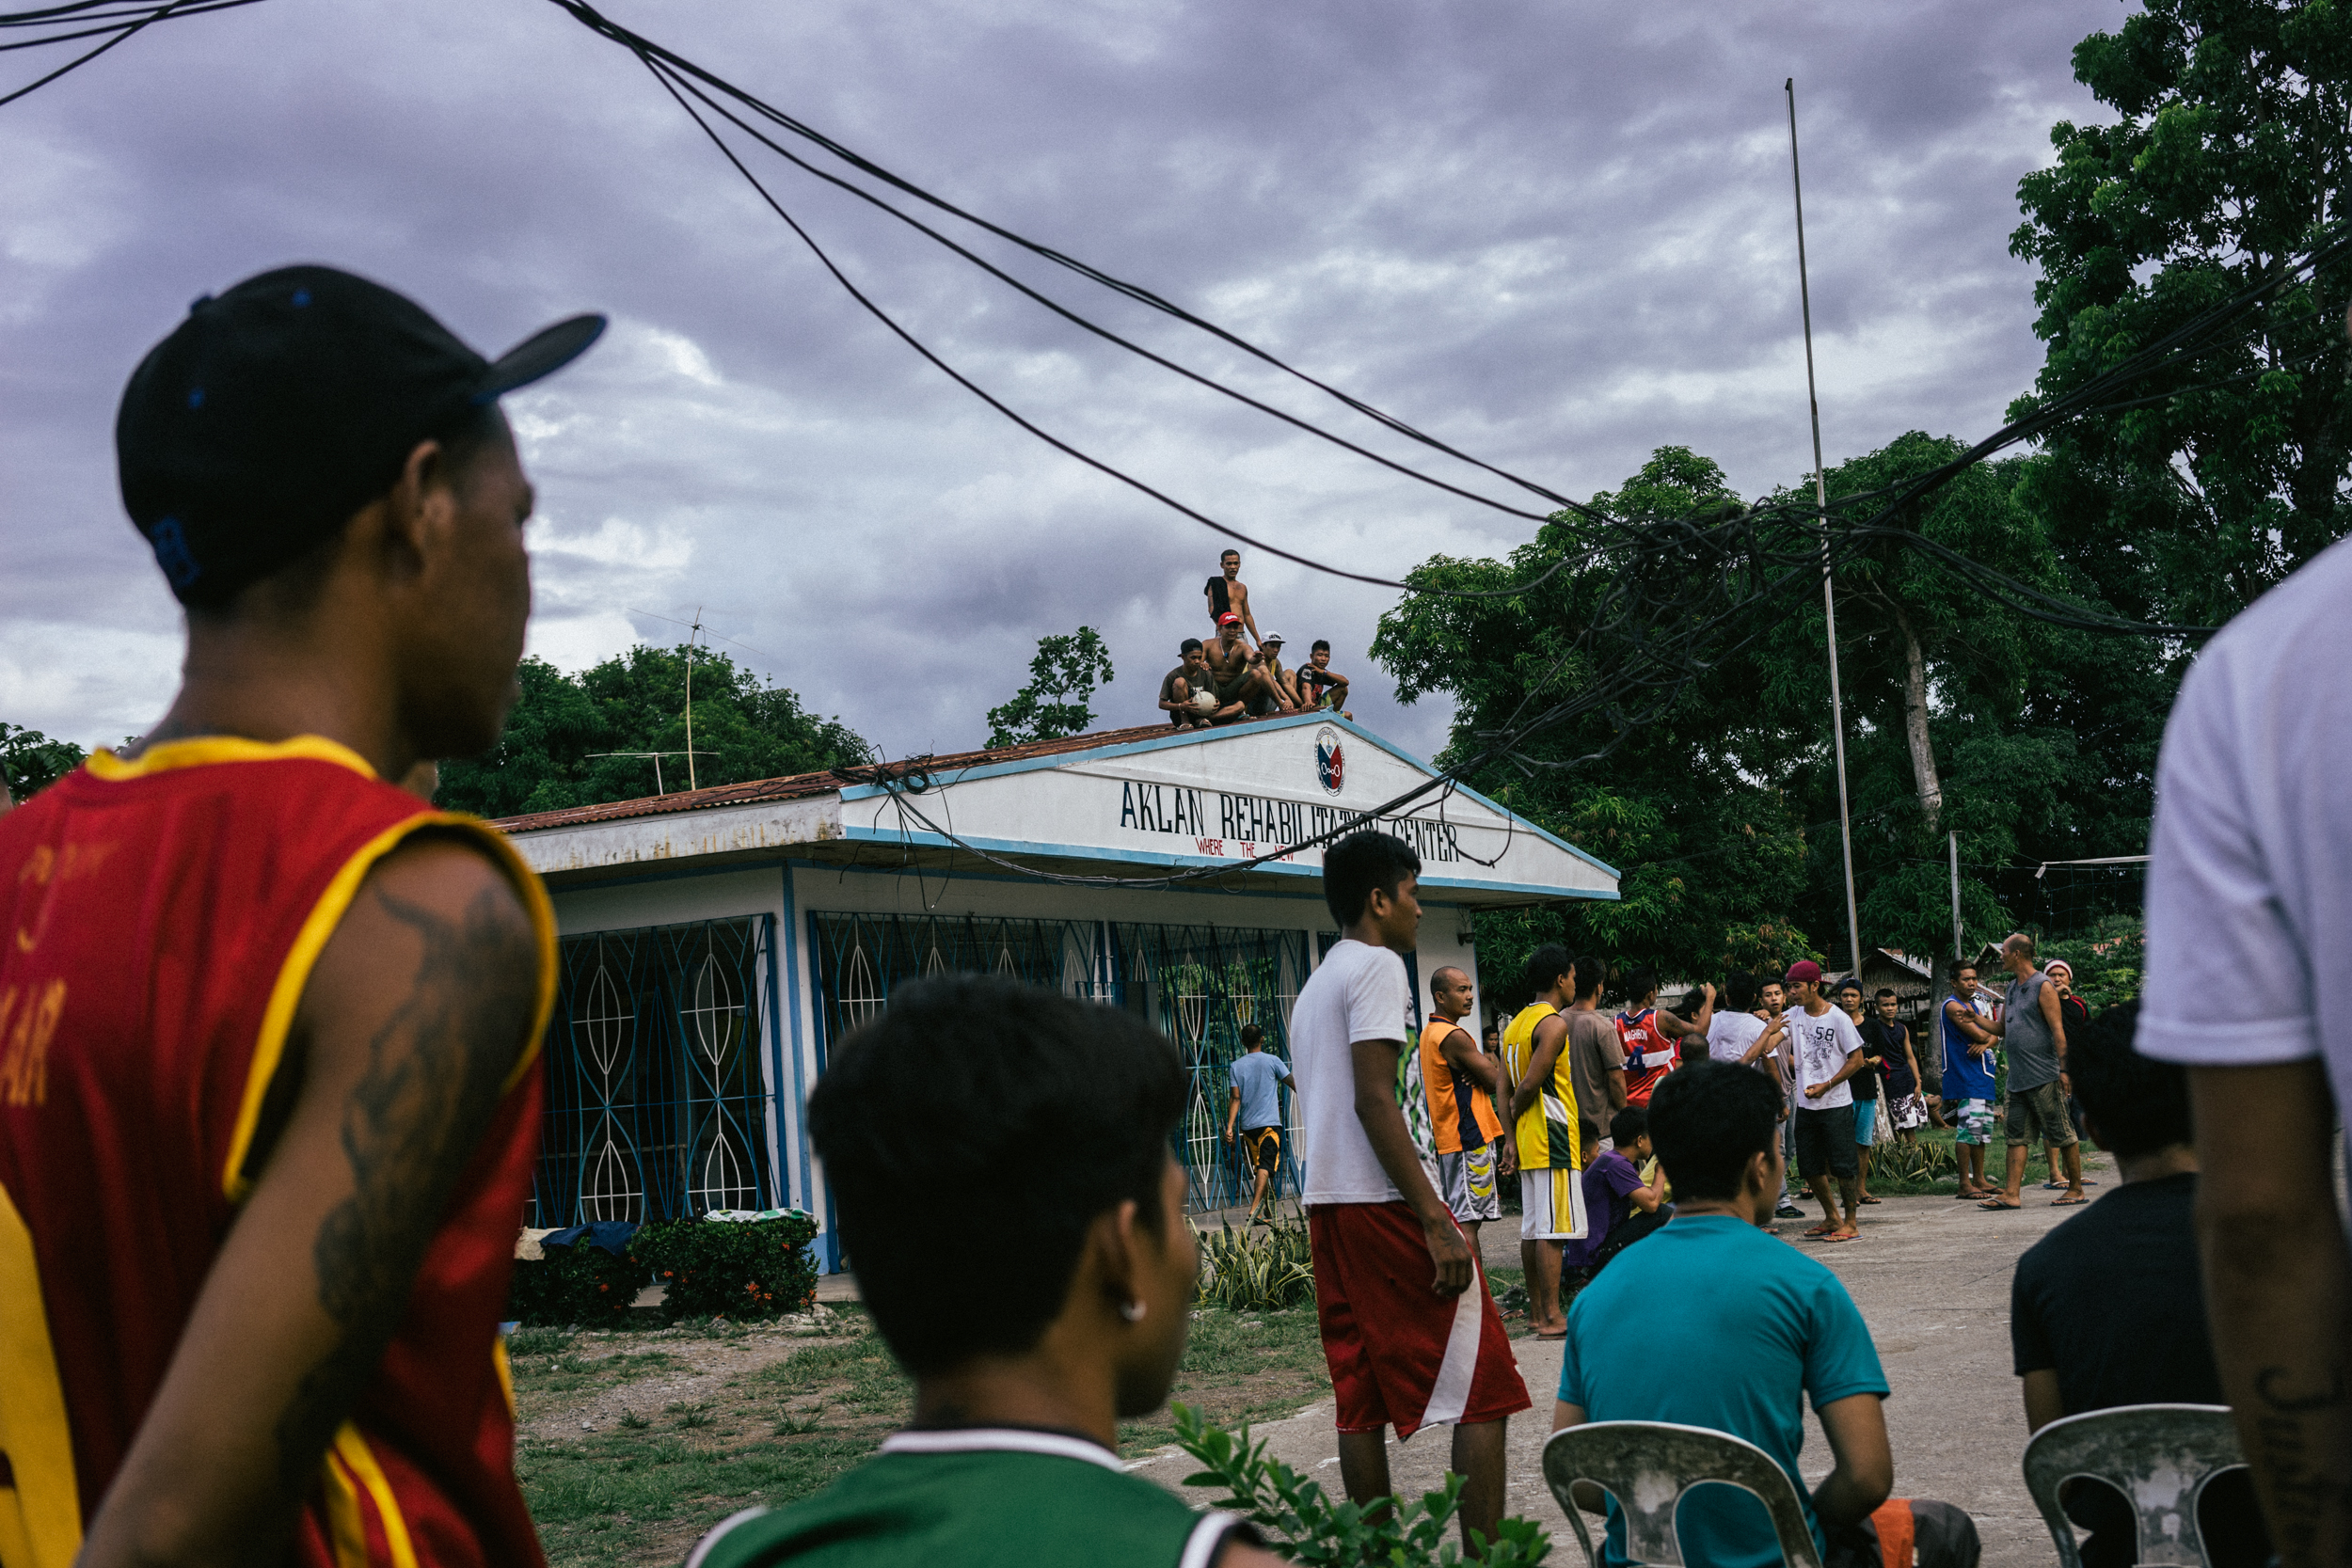 Kalibo, Philippines - September 20, 2015: Men are seen at a local jail. The jail is now home to Celia Robelo, who is being charged for human trafficking and illegal recruitment, following the death of a Filipino seafarer. Robelo claims that she did not have any knowledge of the illegal nature of her recruitment, claiming she only wanted to help these men find work and a way out of poverty. Hannah Reyes